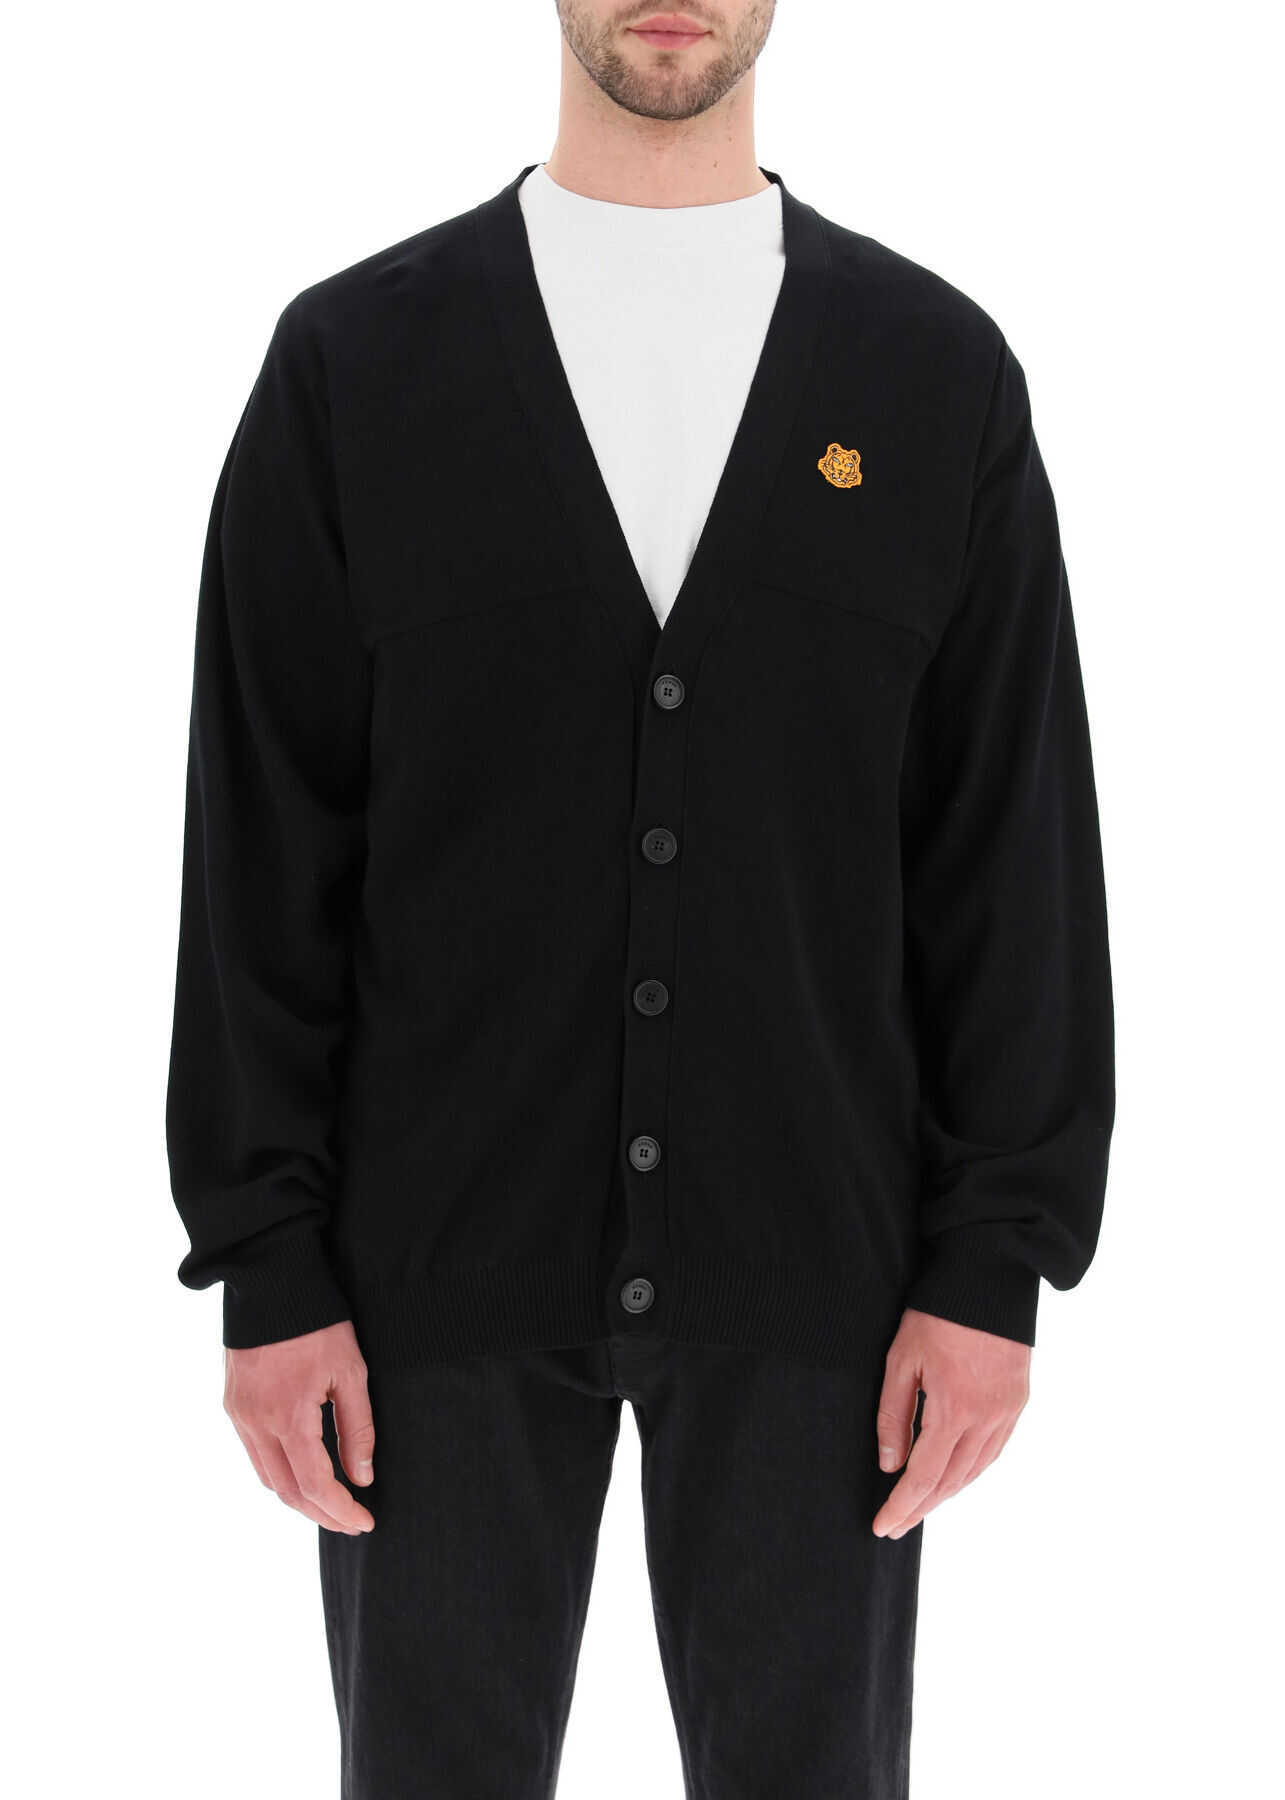 Kenzo Oversized Cardigan With Tiger Crest Patch BLACK imagine